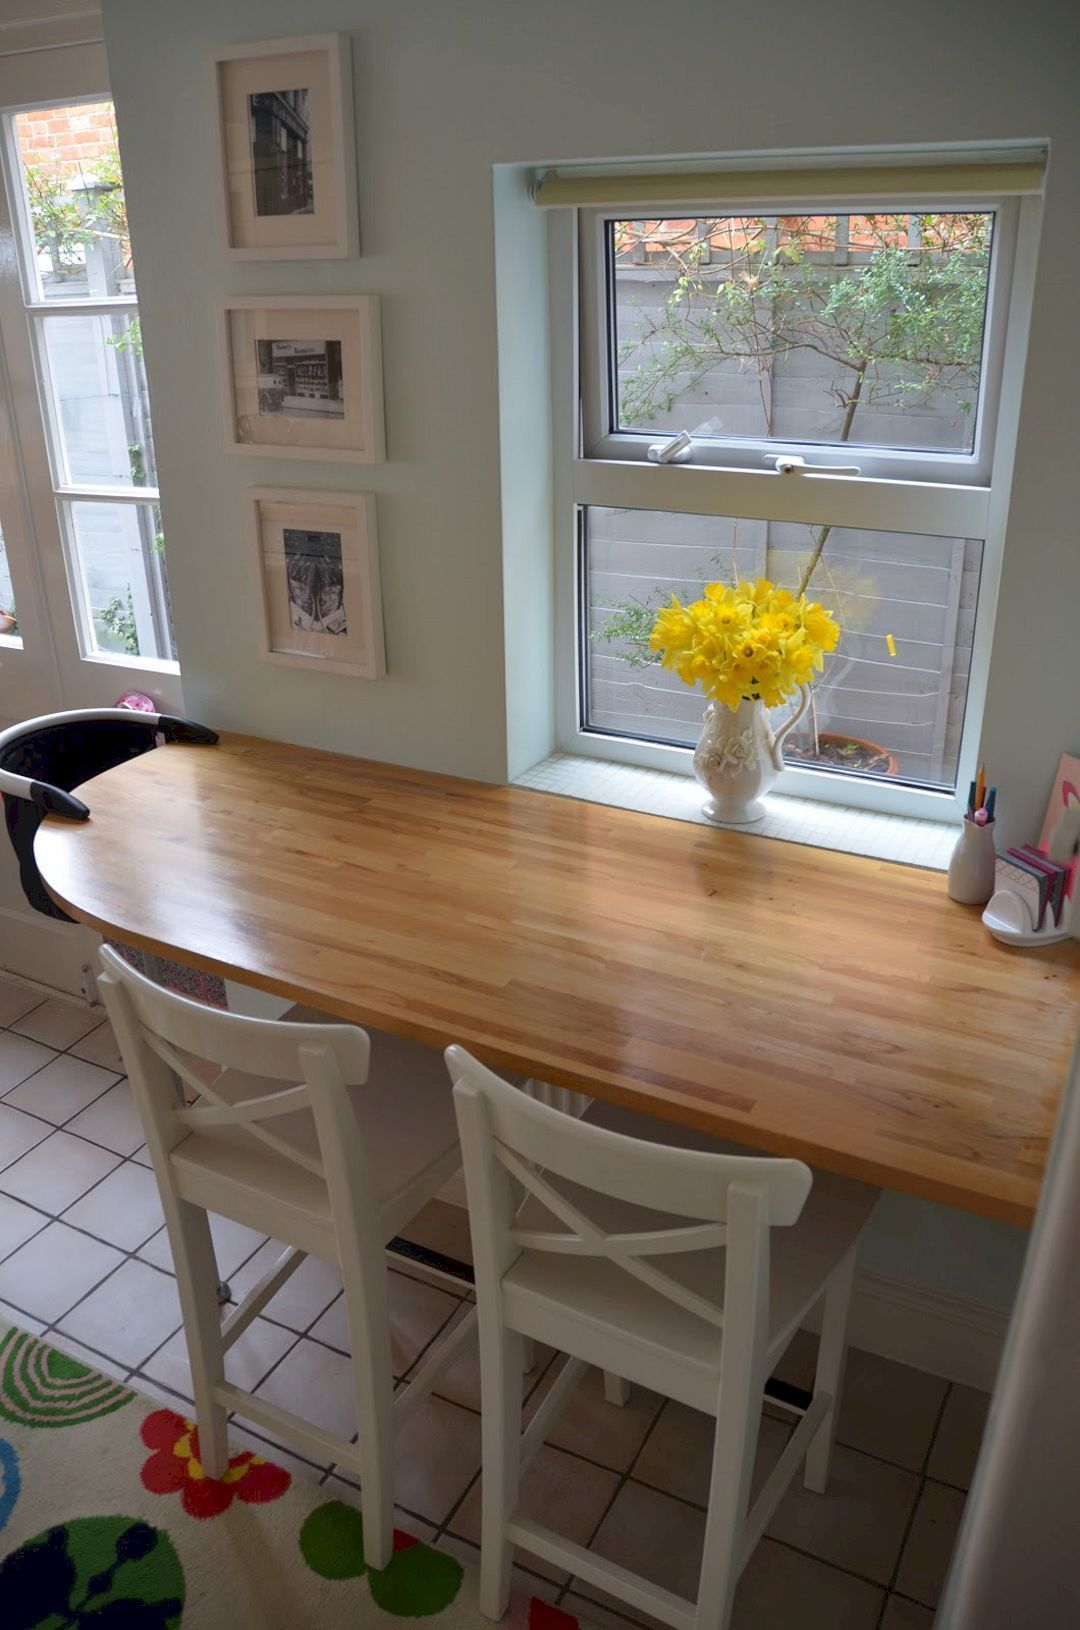 Space Saving Table Design For A Small Room Design Listicle Dining Room Small Small Kitchen Tables Kitchen Bar Table